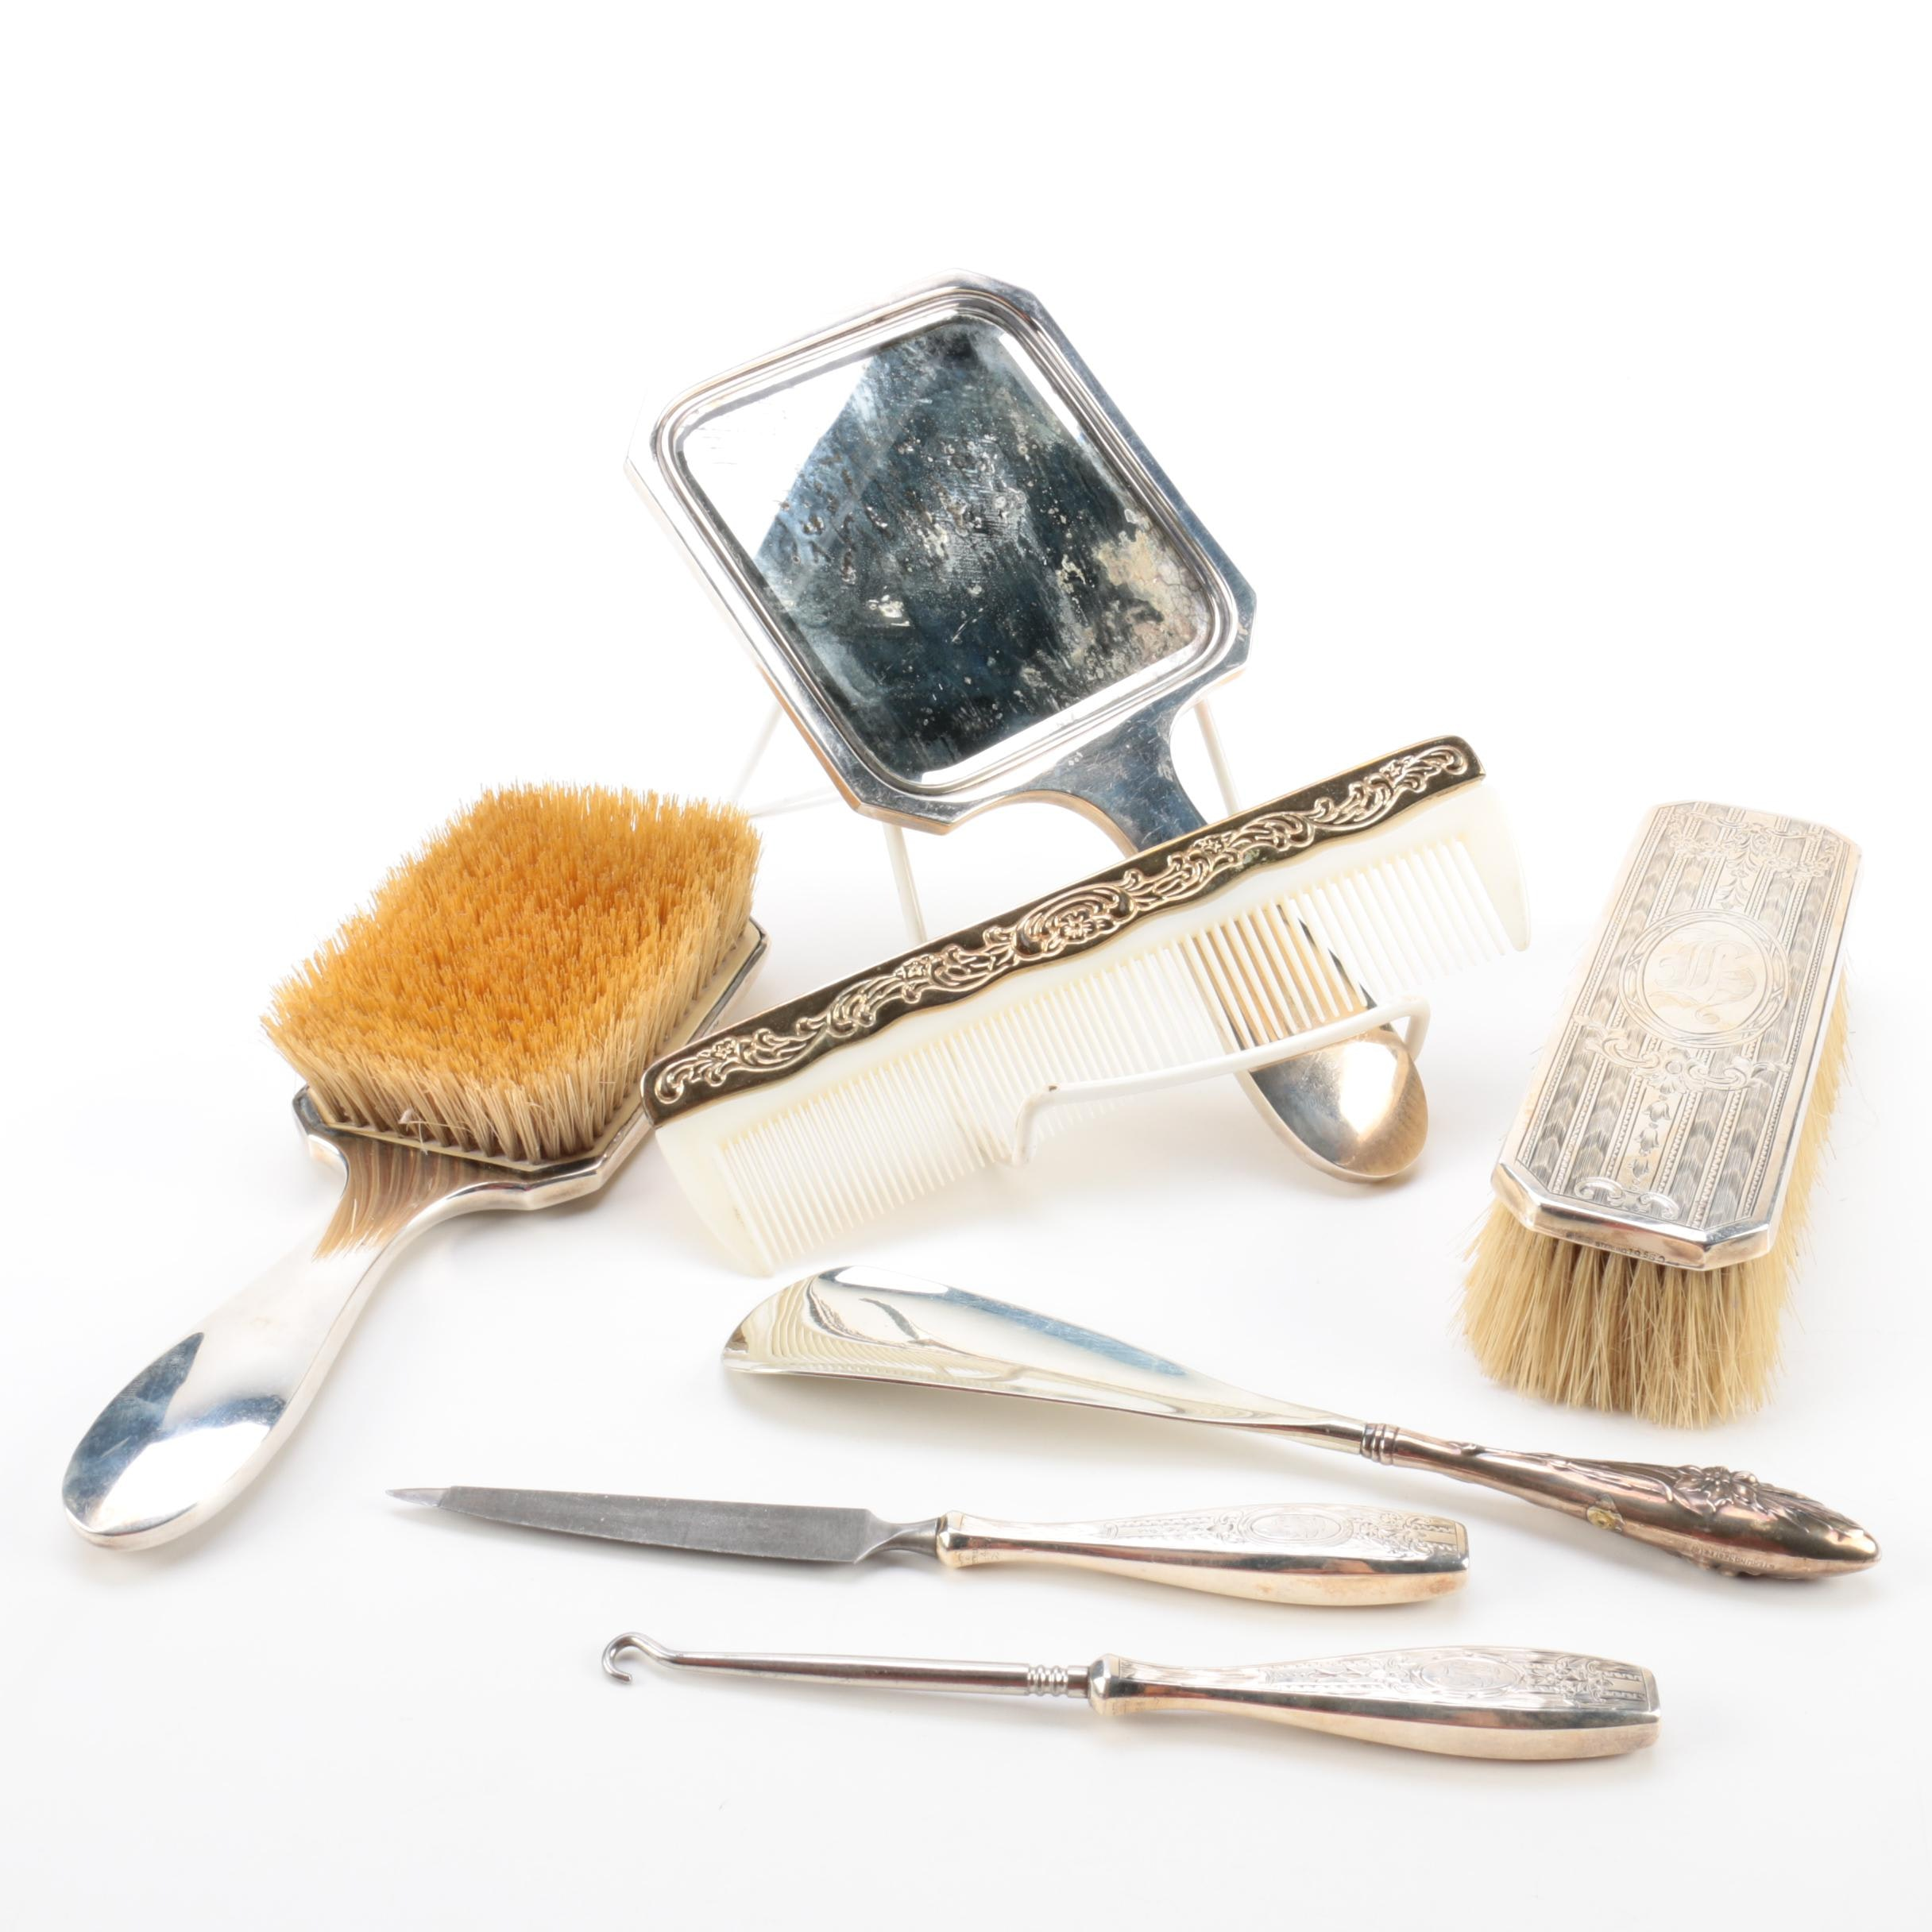 1910 Gorham Sterling Silver Hairbrush and Other Vanity Accessories